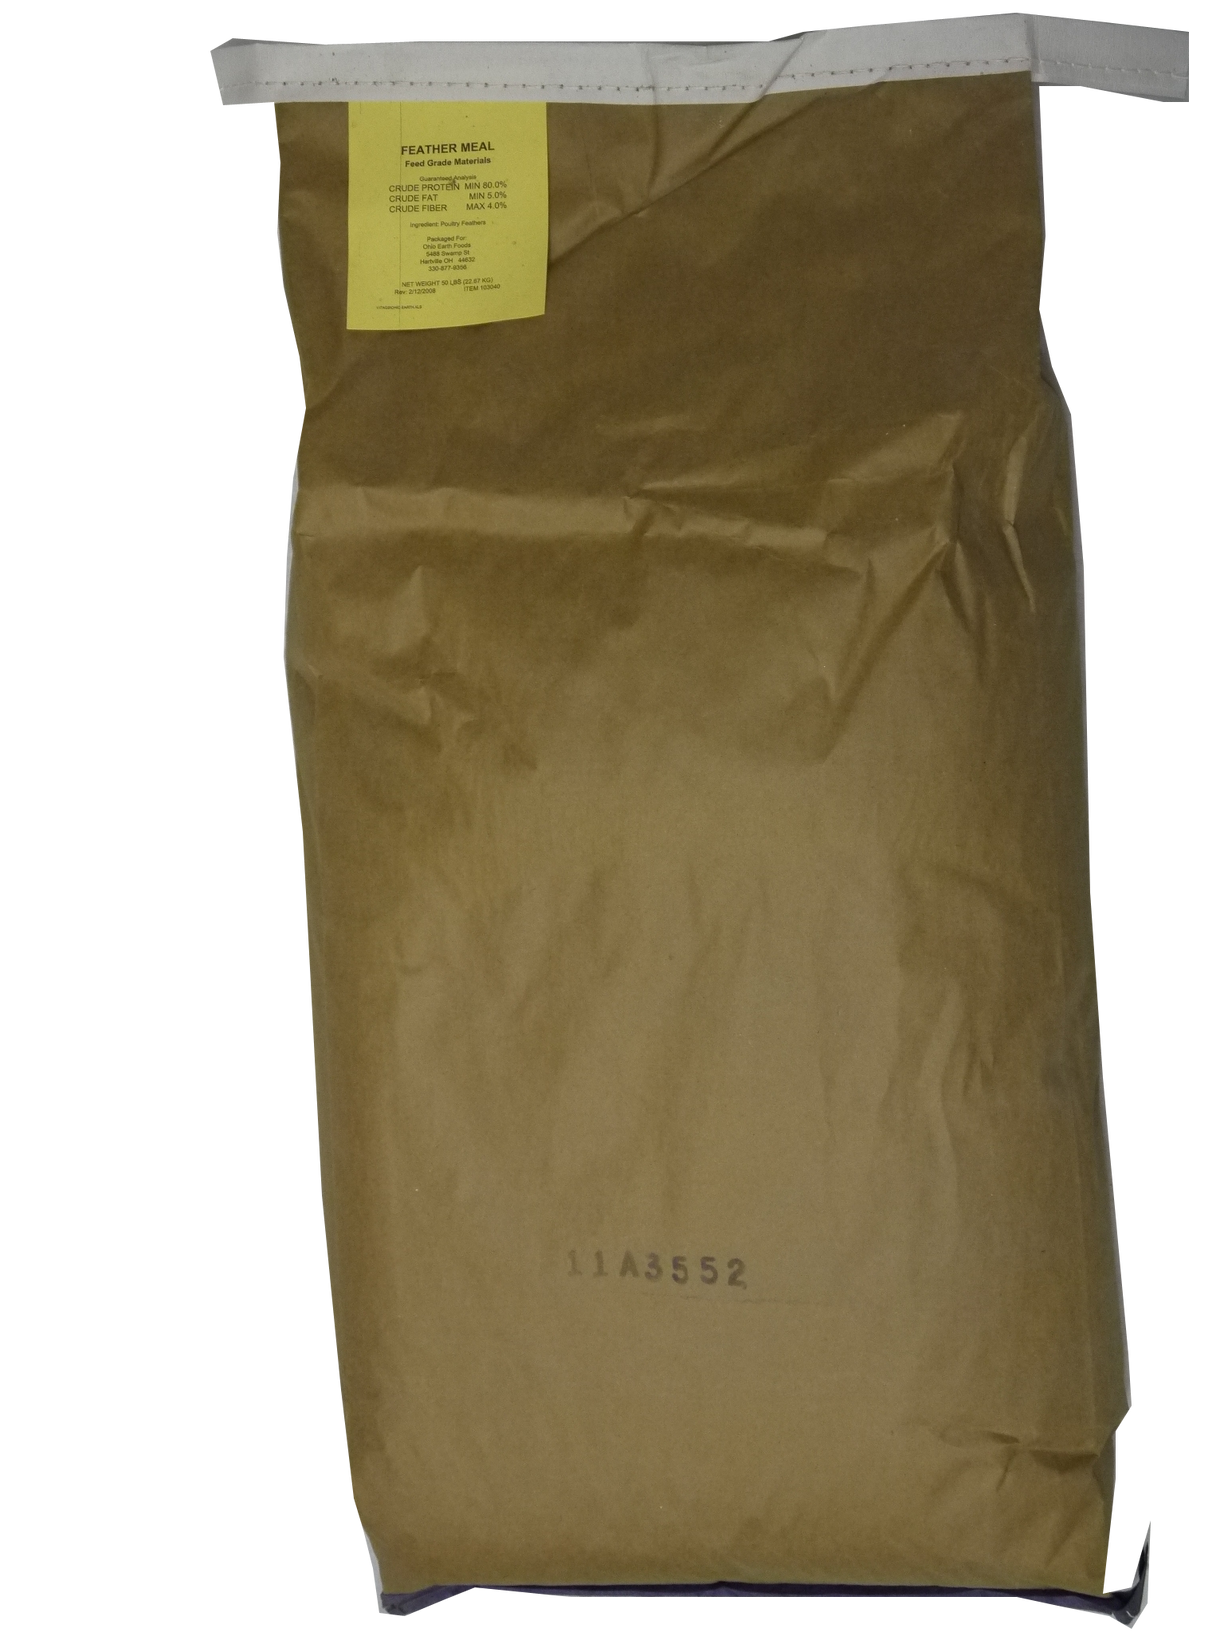 FEATHERMEAL 50# bag